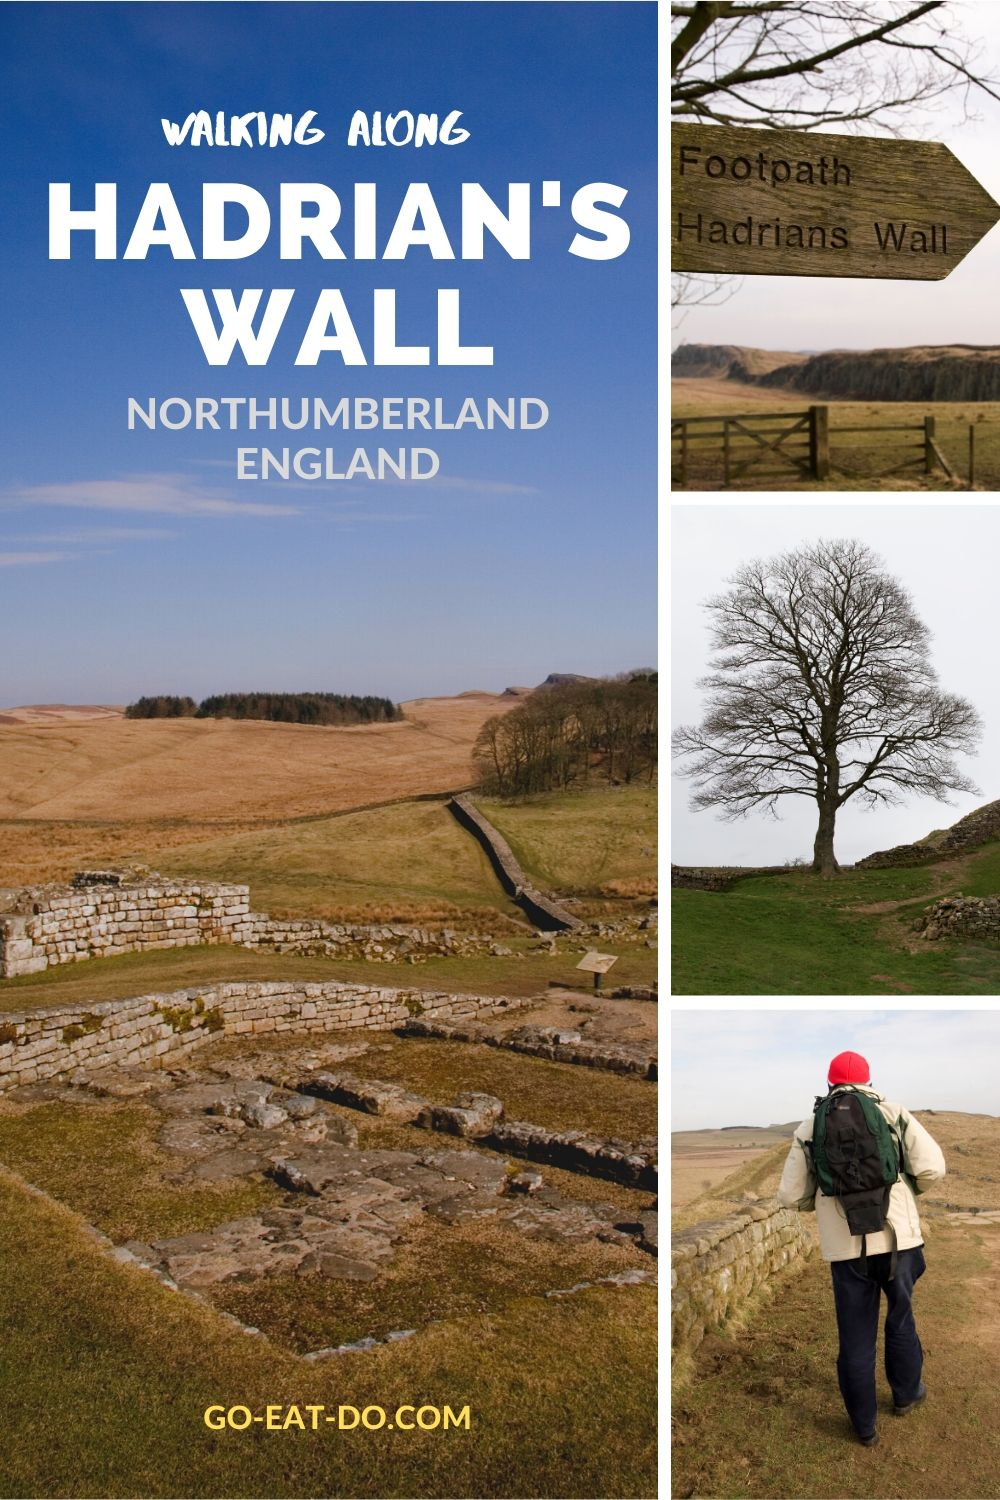 Pinterest pin for Go Eat Do's blog post about walking along Hadrian's Wall in Northumberland, England